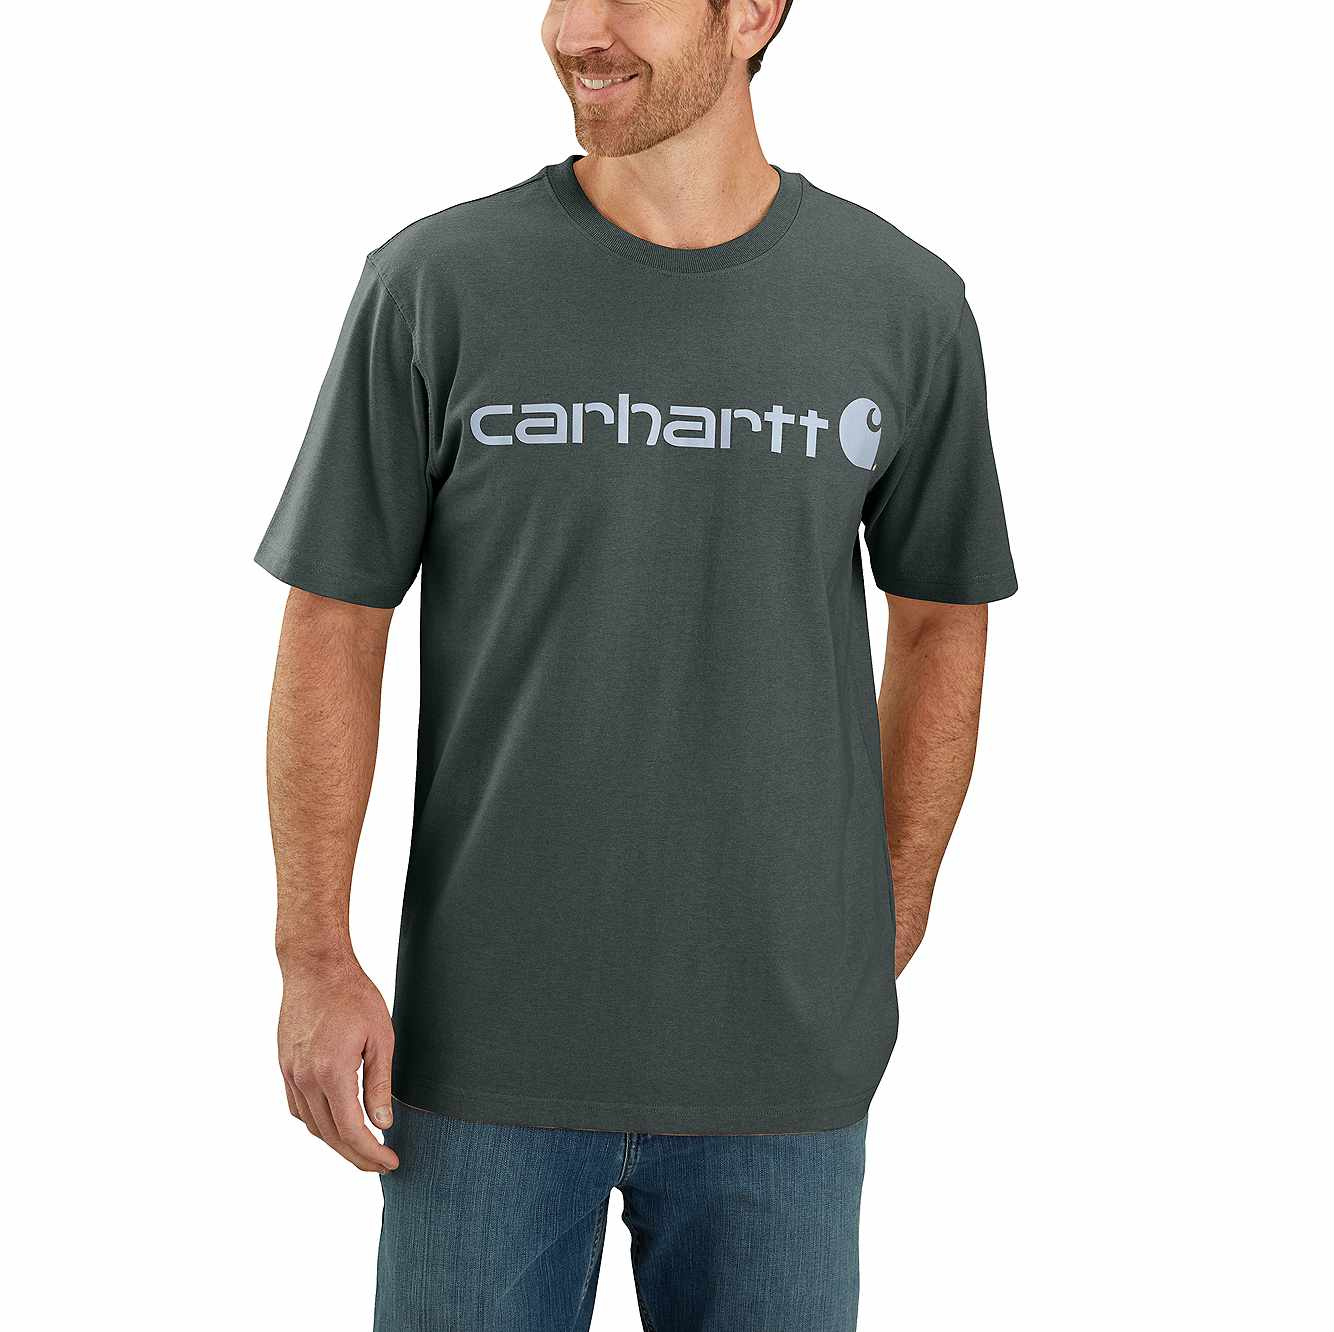 Picture of RELAXED FIT HEAVYWEIGHT SHORT-SLEEVE LOGO GRAPHIC T-SHIRT